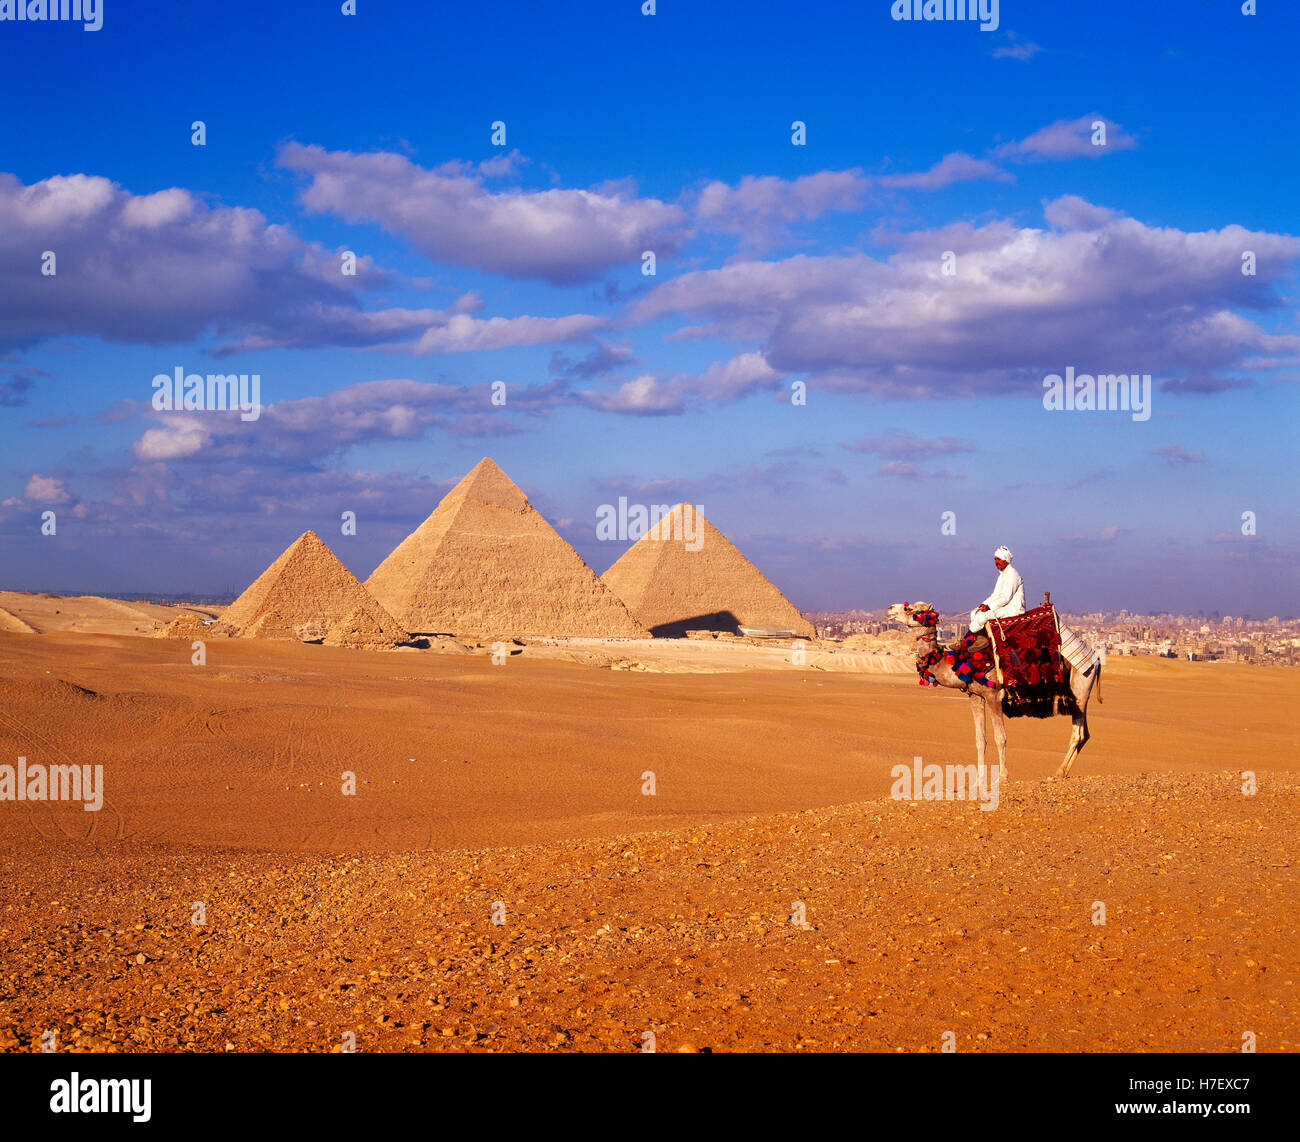 Pyramides et Camel, Giza, Egypte Photo Stock